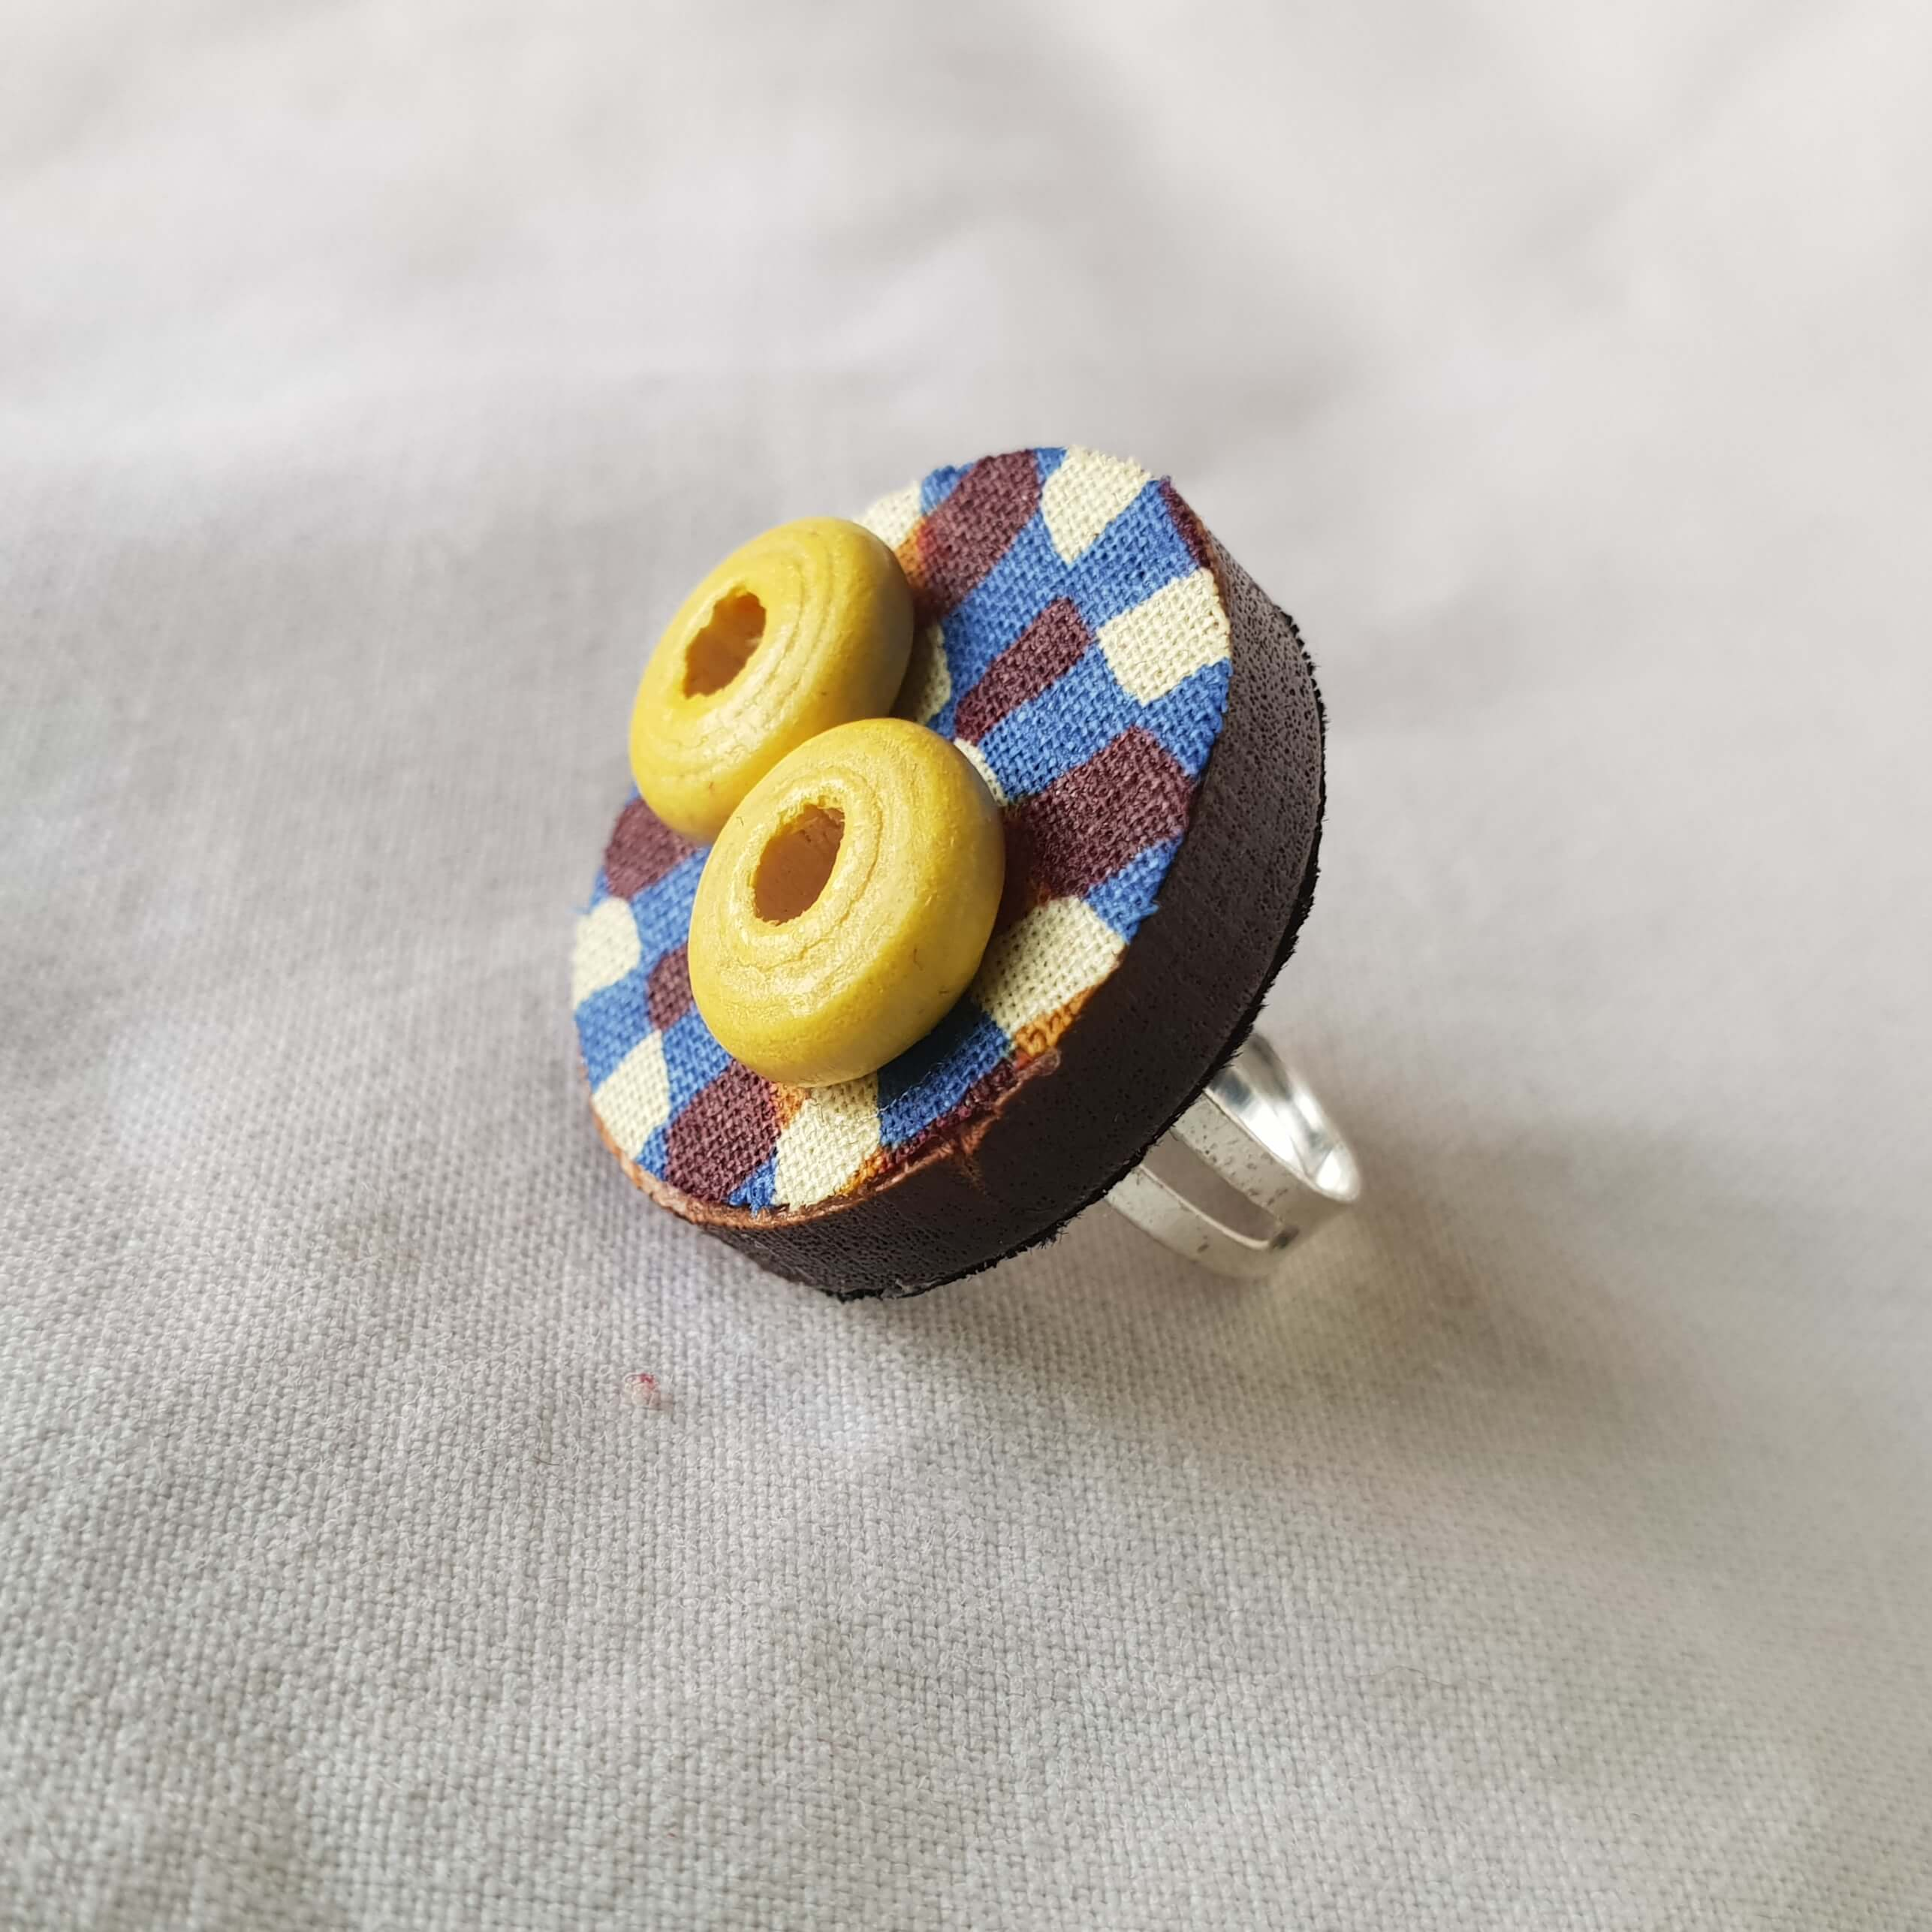 Adjustable rings made with wax print